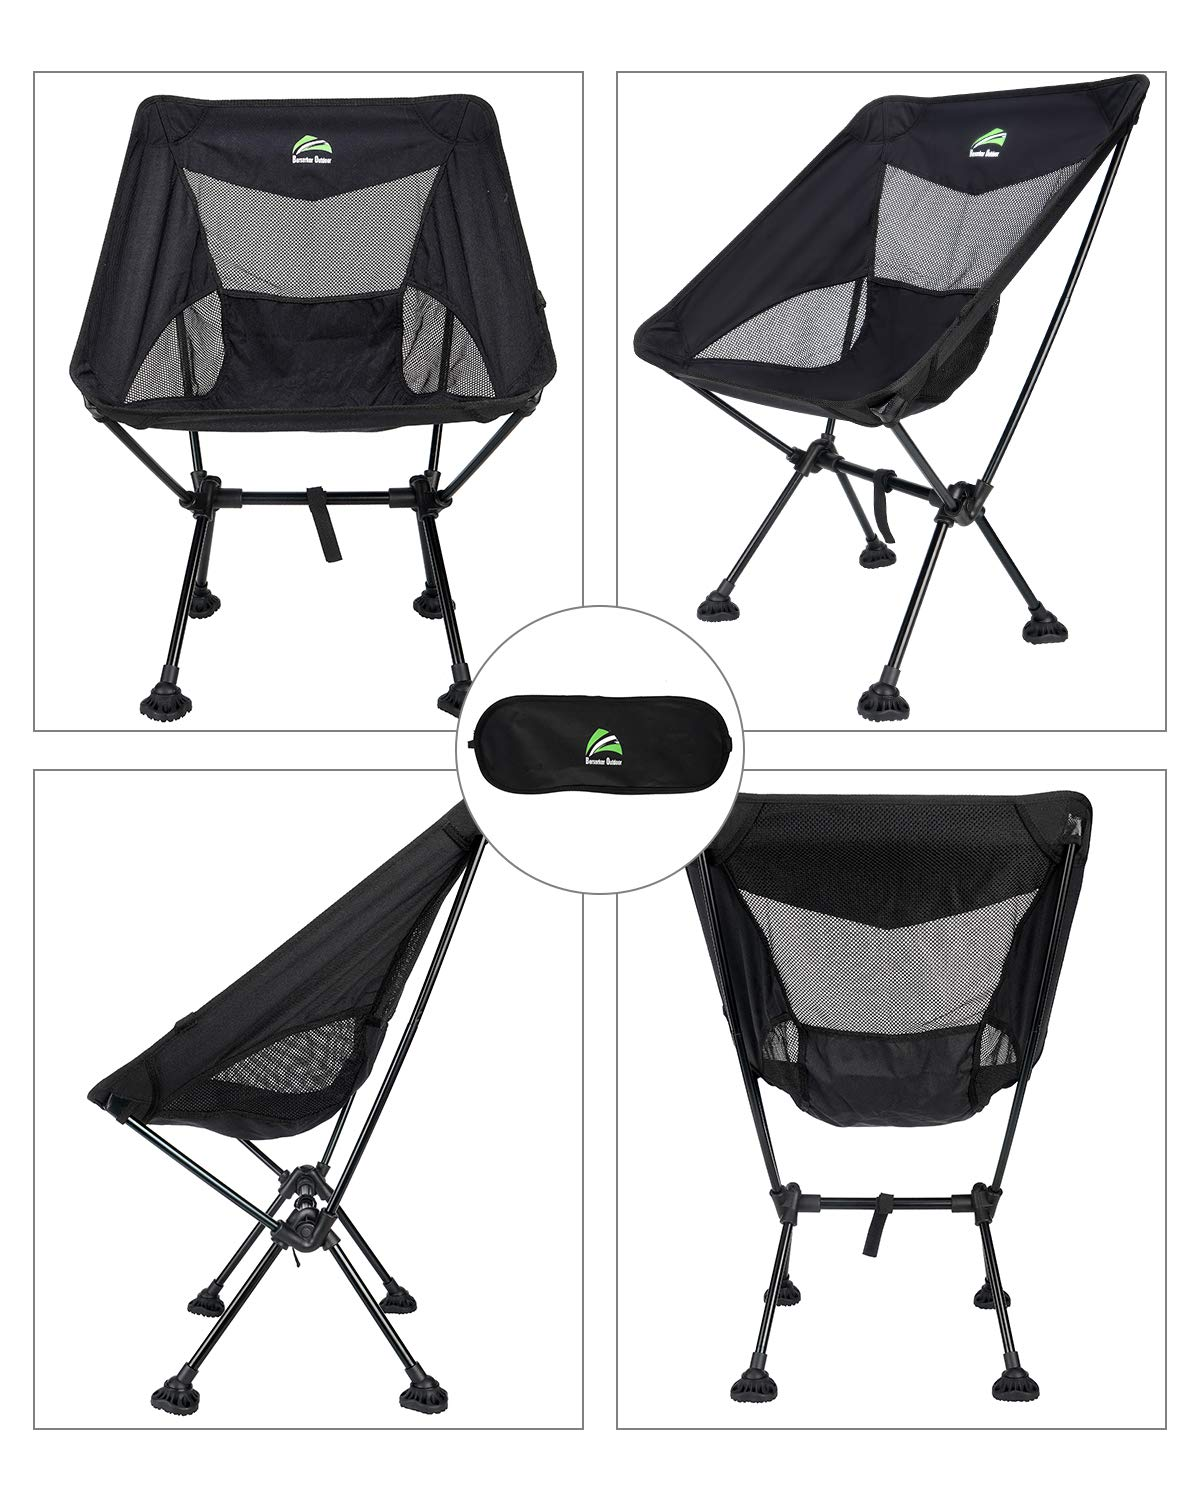 BERSERKER OUTDOOR Ultralight Compact Folding Camping Chairs Portable Lightweight Backpack Hiking Chair with All-Terrain Large Feet Heavy Duty 300lbs for Outdoor Camp, Beach, Picnic, Travel